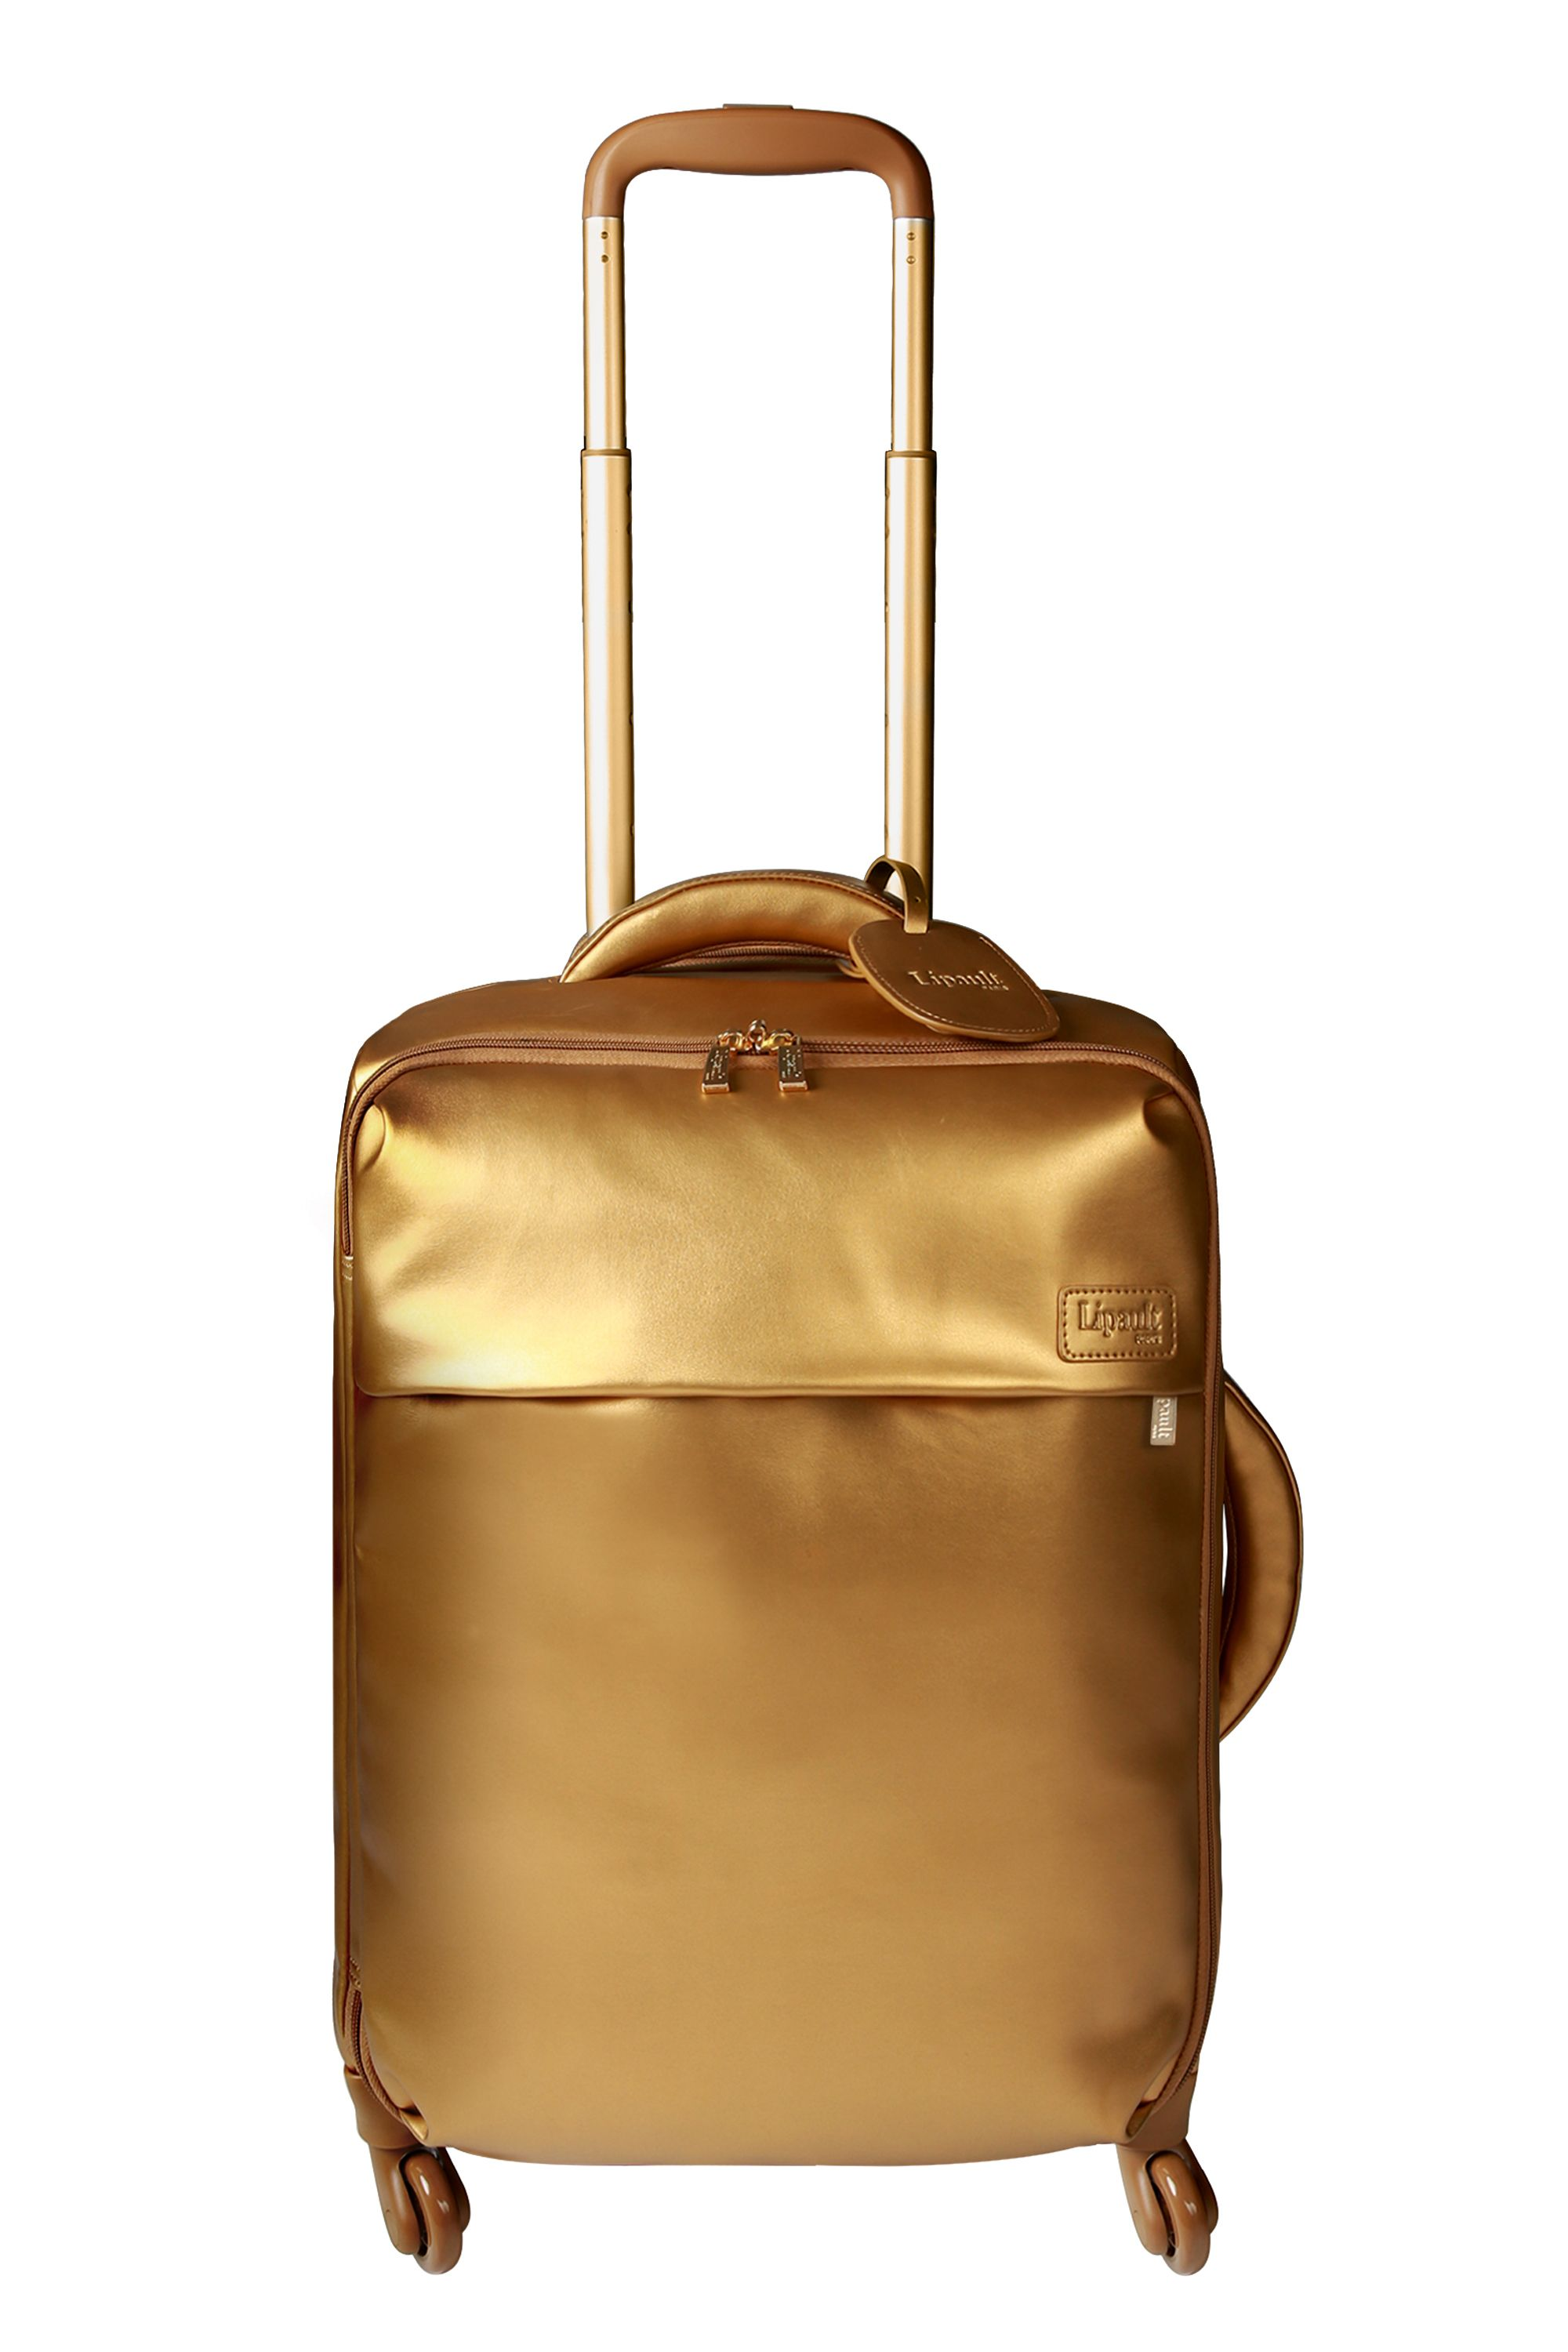 Lipault Miss Plume Gold Cabin 55cm Spinner Suitcase, Gold